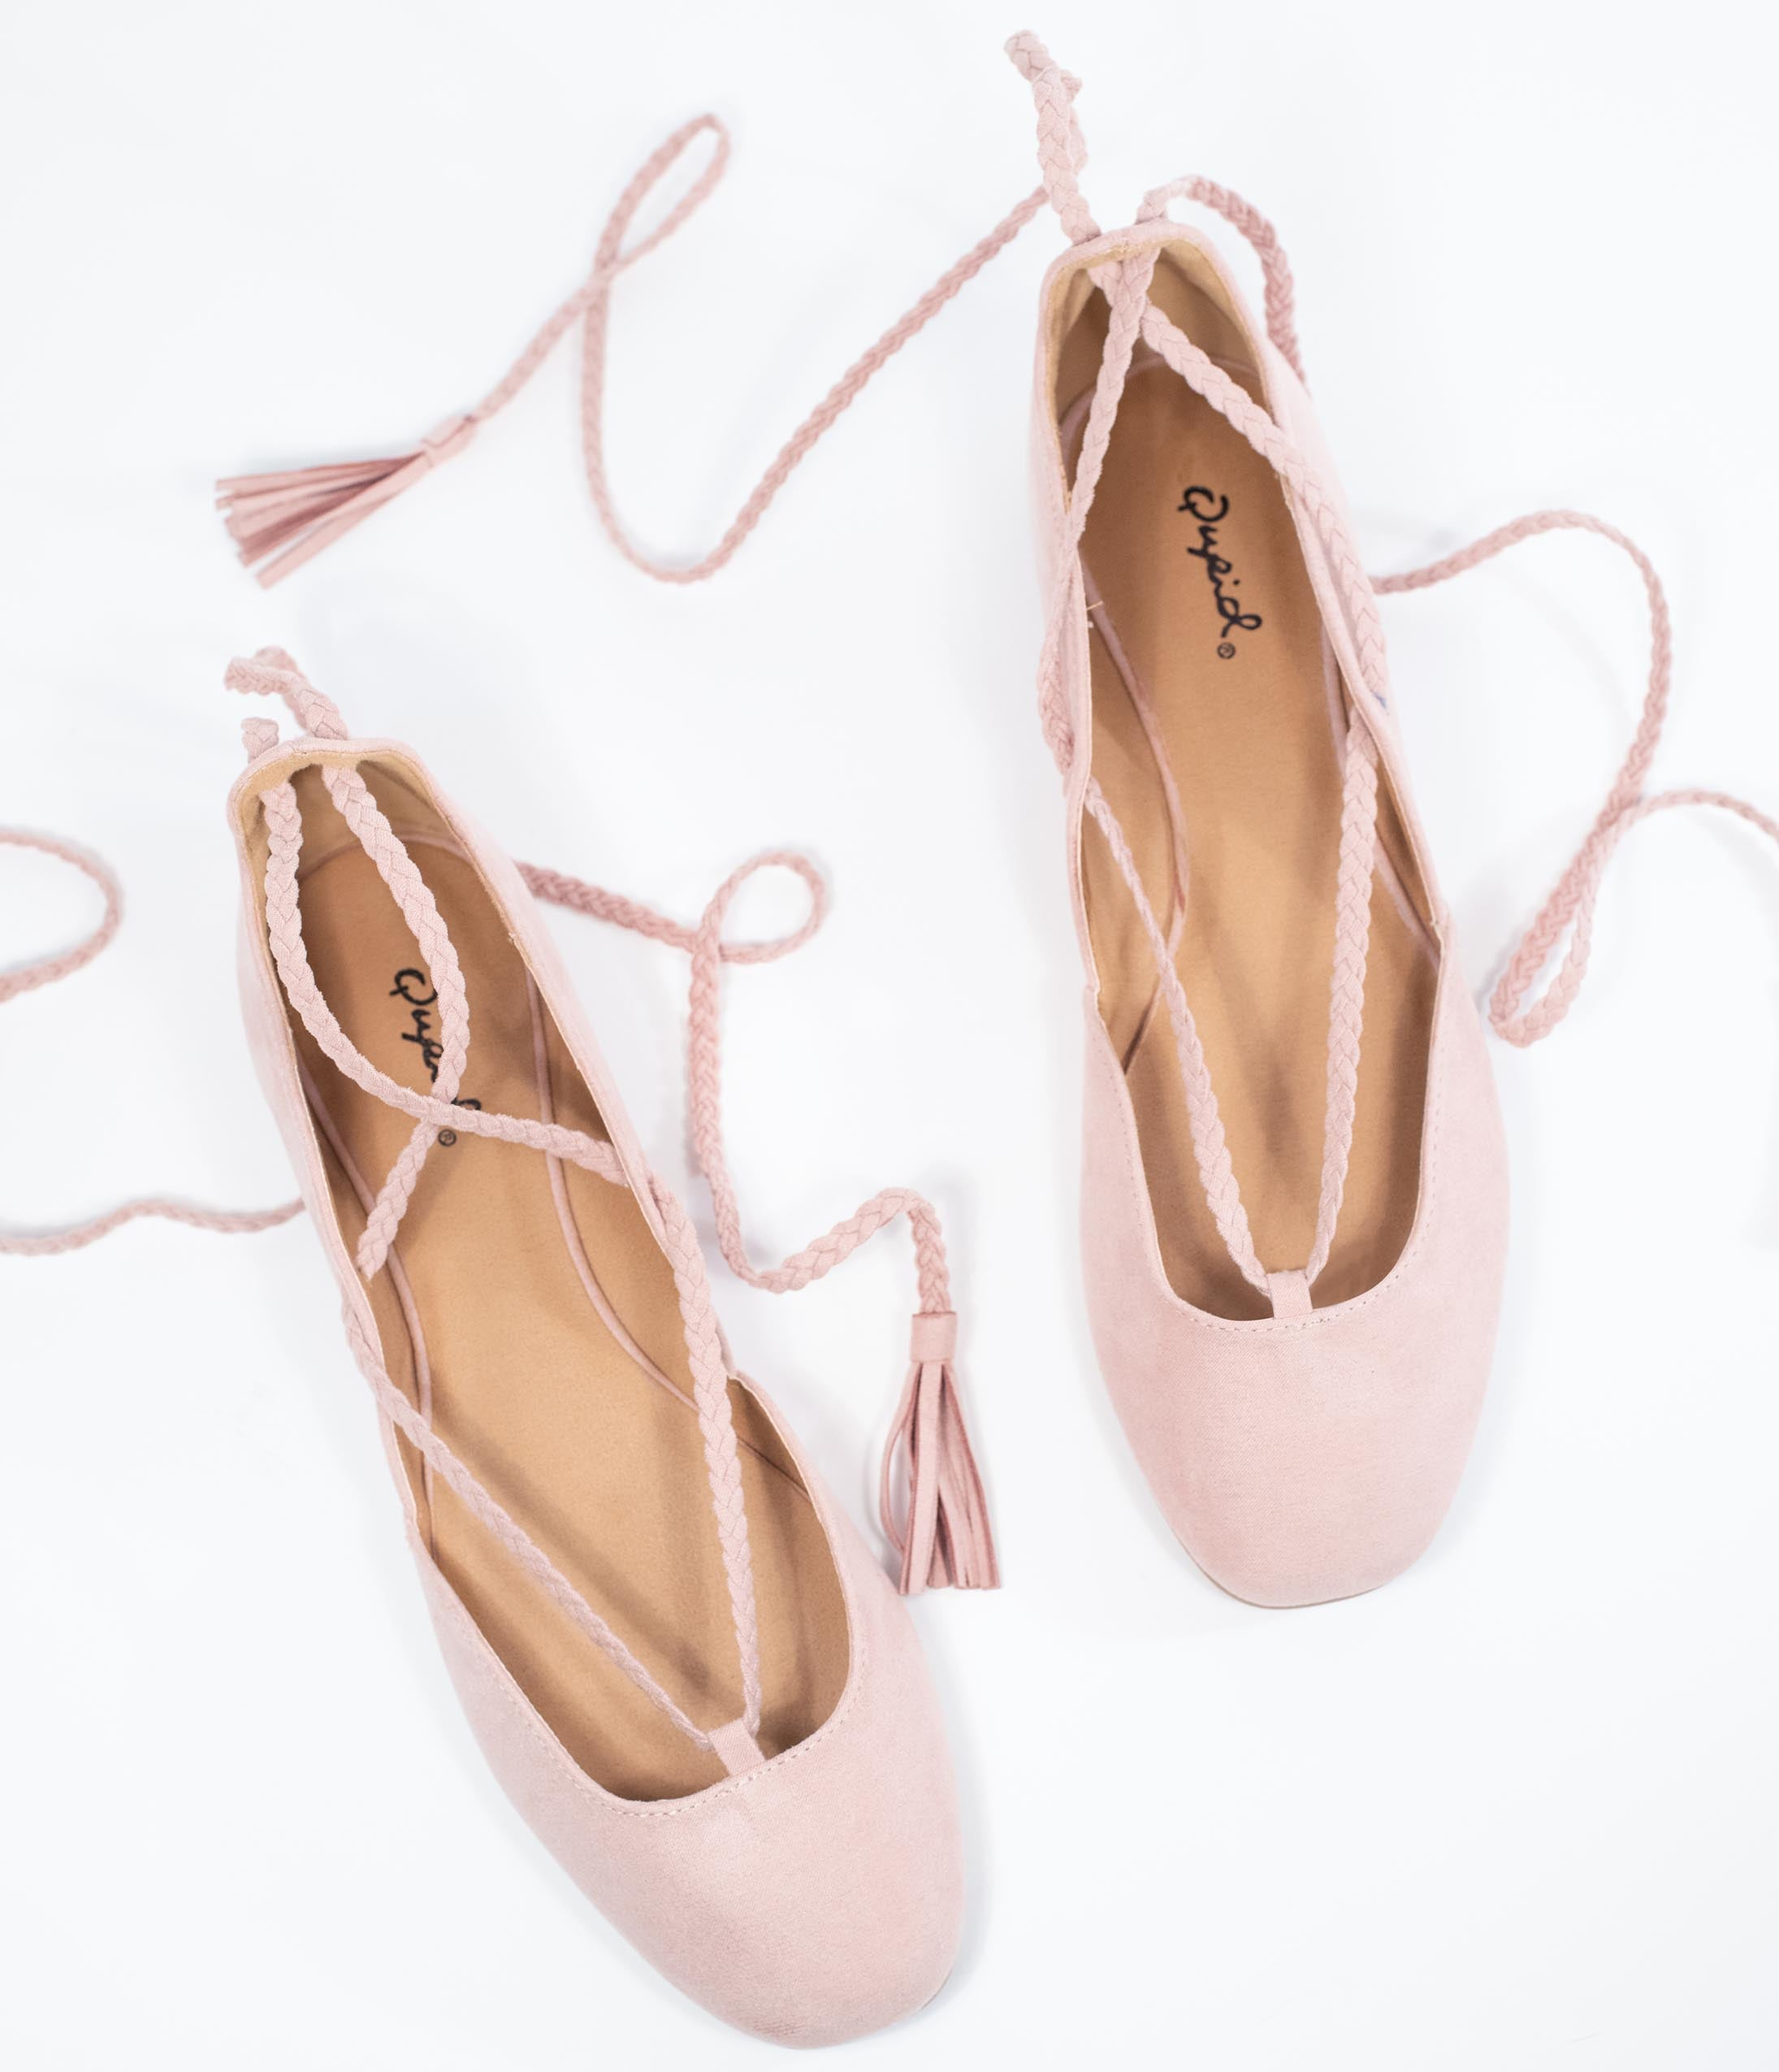 1950s Style Clothing & Fashion Blush Pink Suede Lace Up Flats $38.00 AT vintagedancer.com